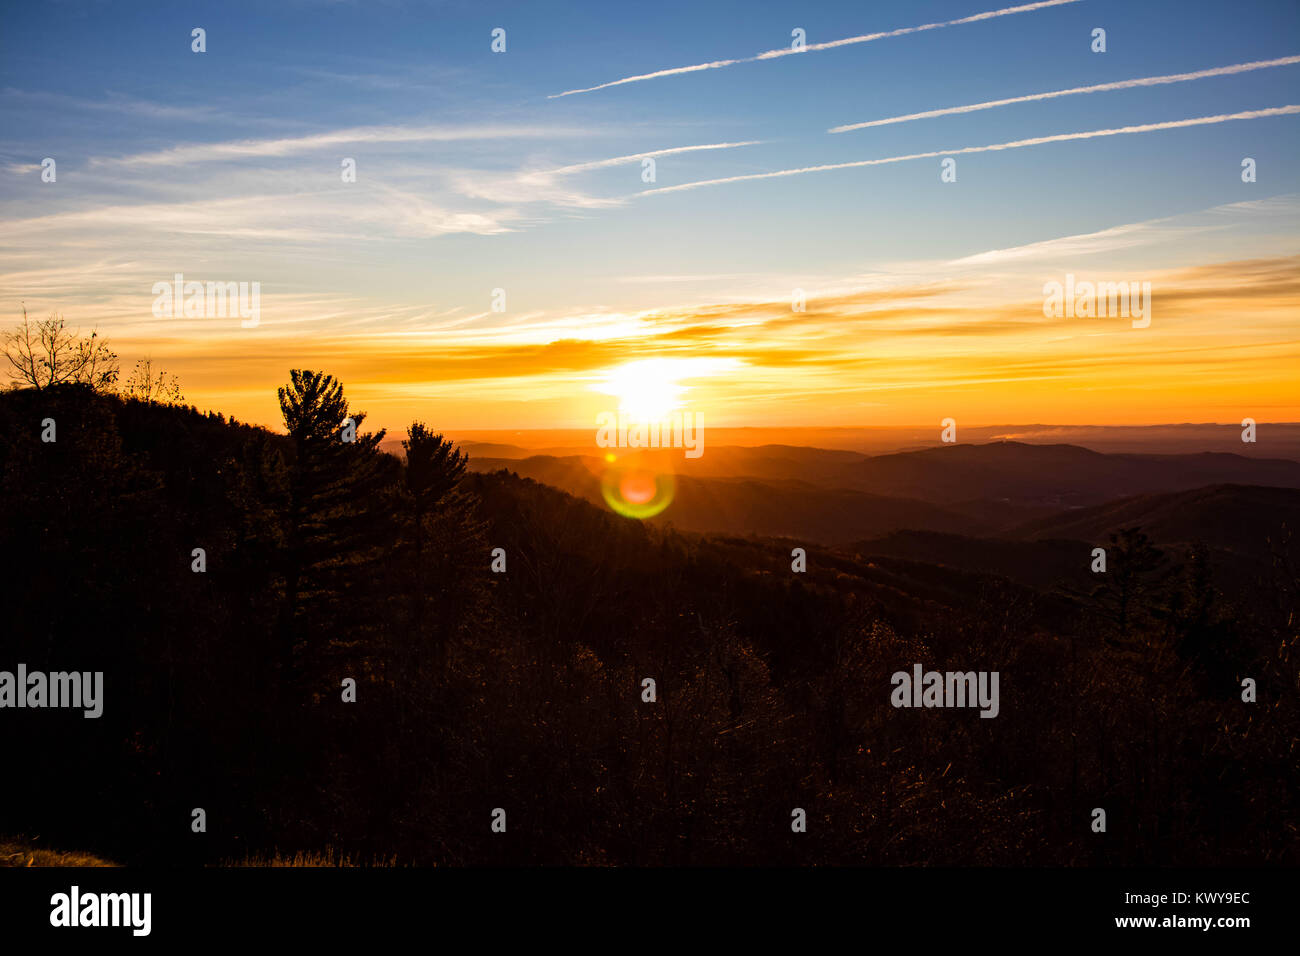 Sunrise - Stock Image